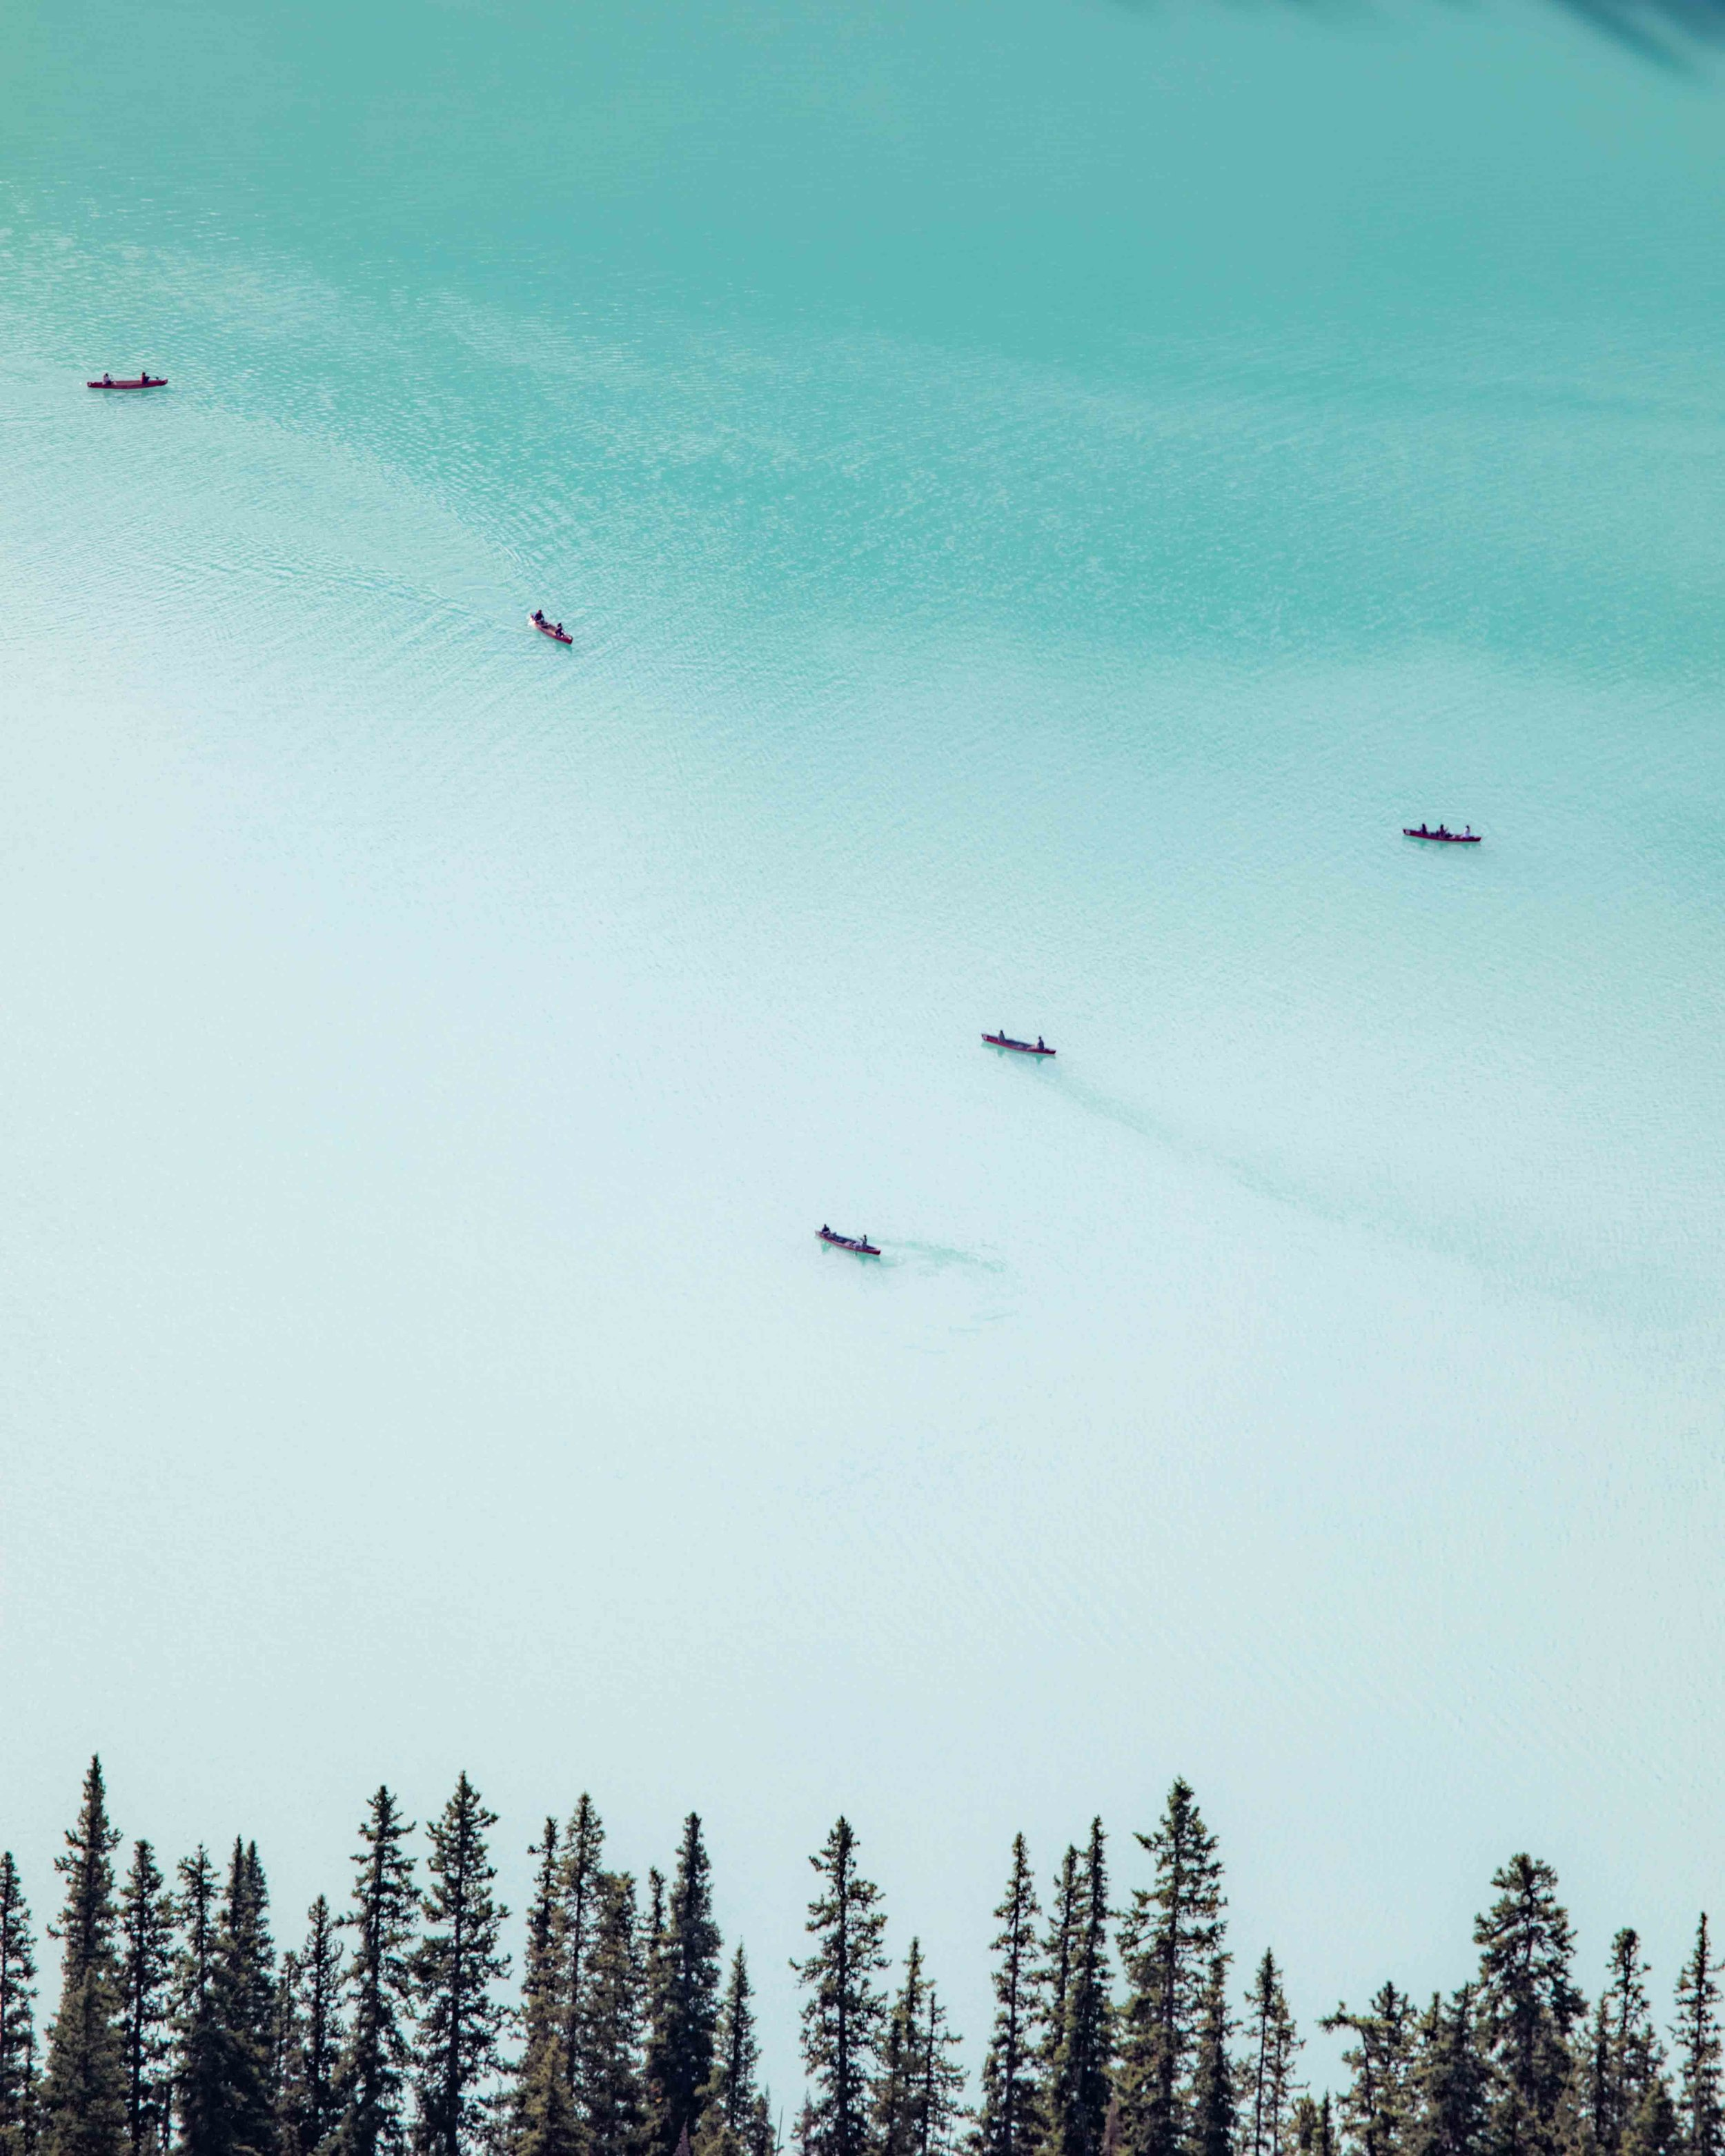 The canoes from Big Bee Hive on the Lake Agnes Trail in Lake Louise